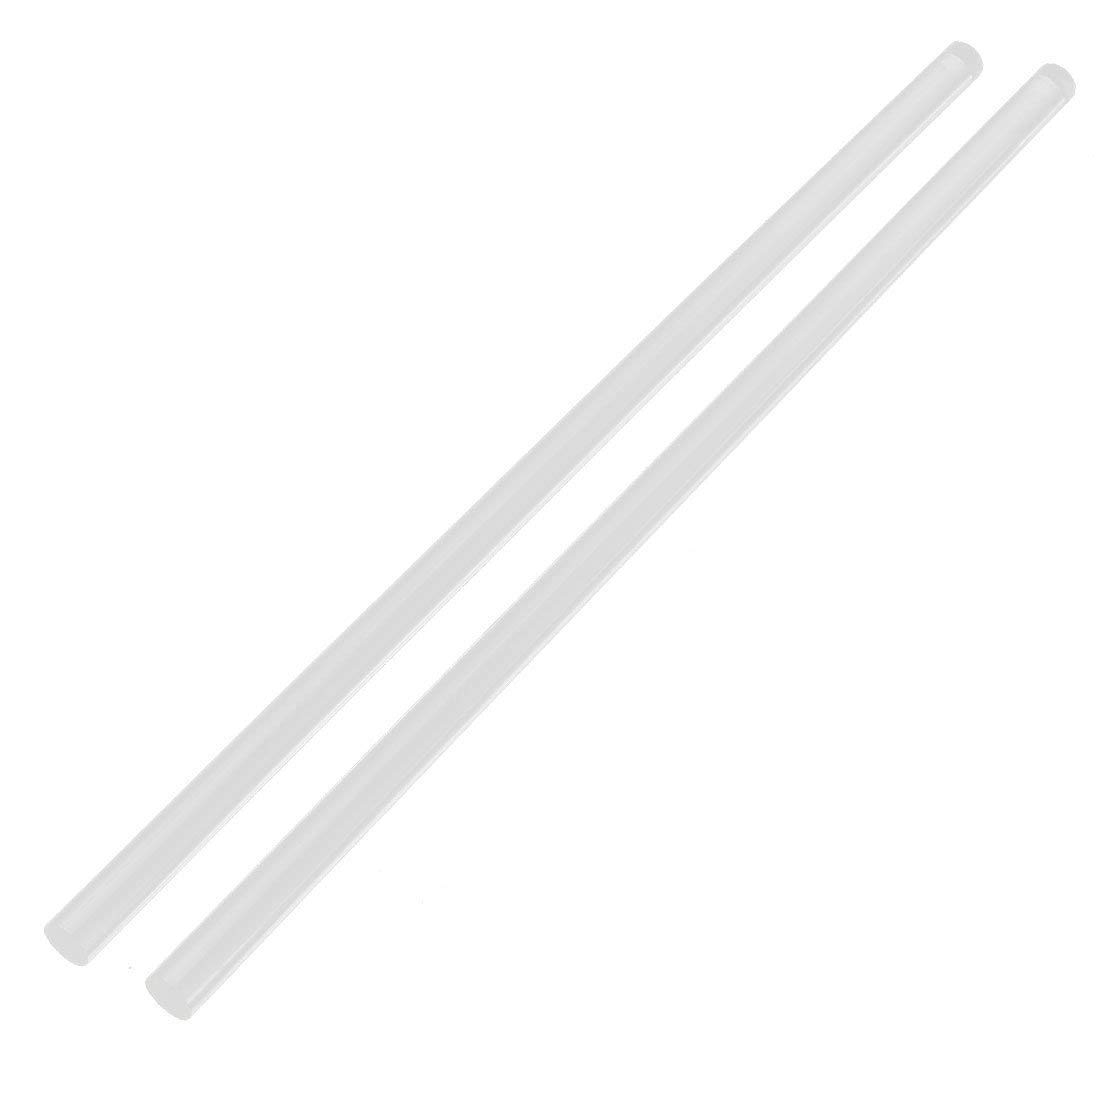 Hot Sale 3Mmx250Mm Round Shape Solid Acrylic Rod Pmma Extruded Bar Clear 2Pcs